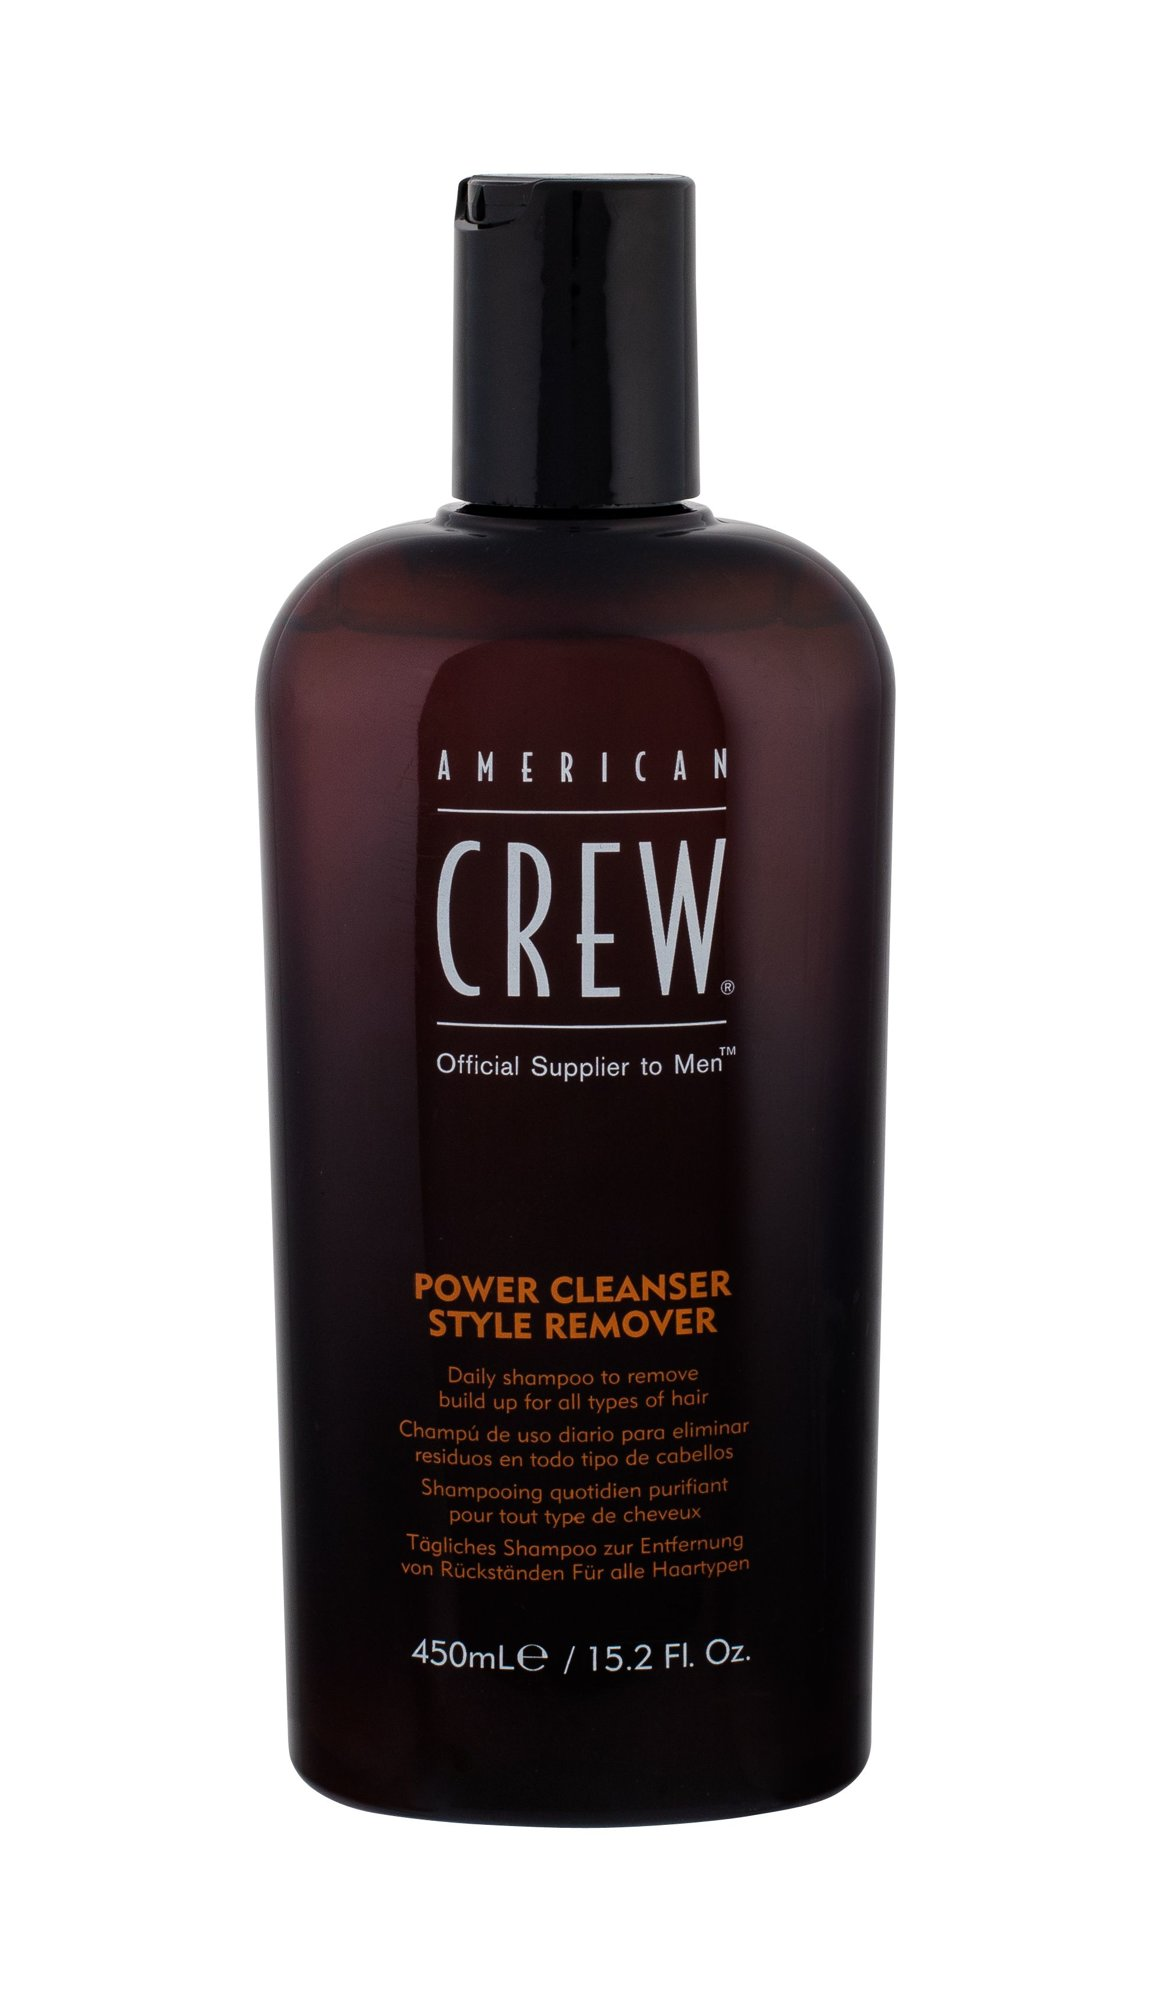 American Crew Classic Shampoo 450ml  Power Cleanser Style Remover